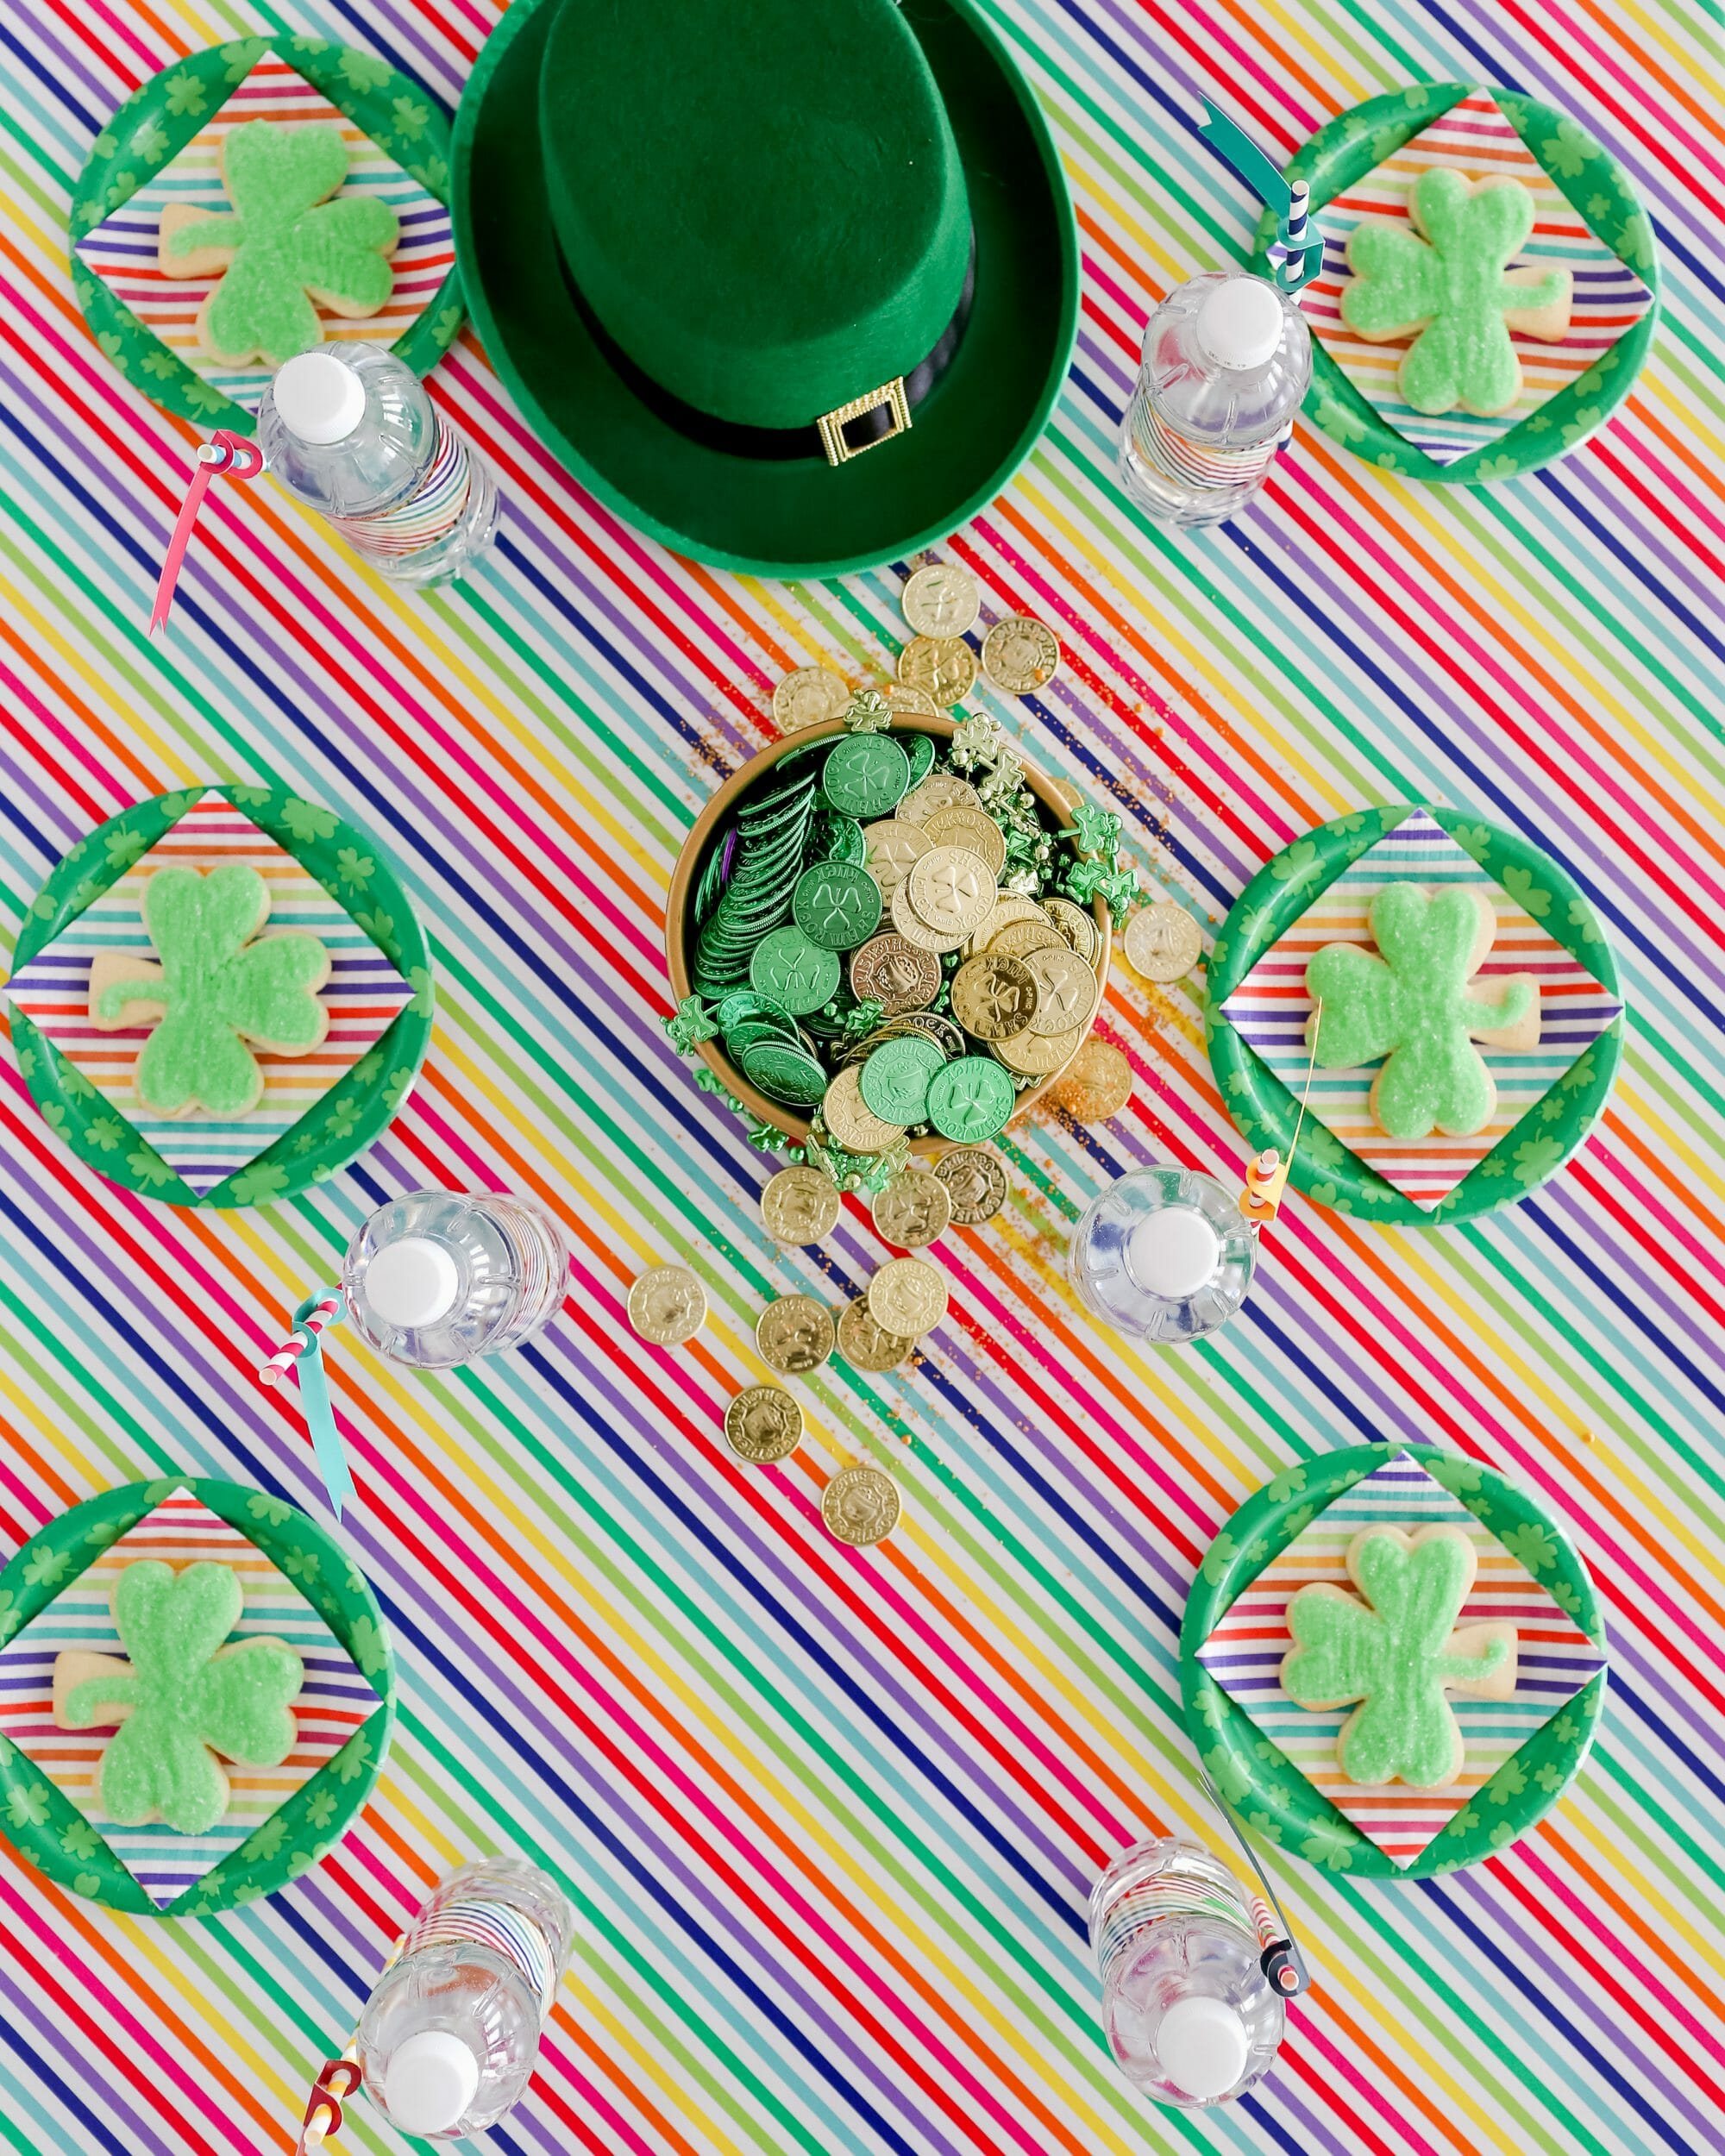 Easy St Patrick's Day Ideas for Kids | st. Patrick's day crafts | st. Patrick's day fun | fun ideas for st. Patrick's day || JennyCookies.com #stpatricksdayfun #kidscrafts #stpaddysday #jennycookies